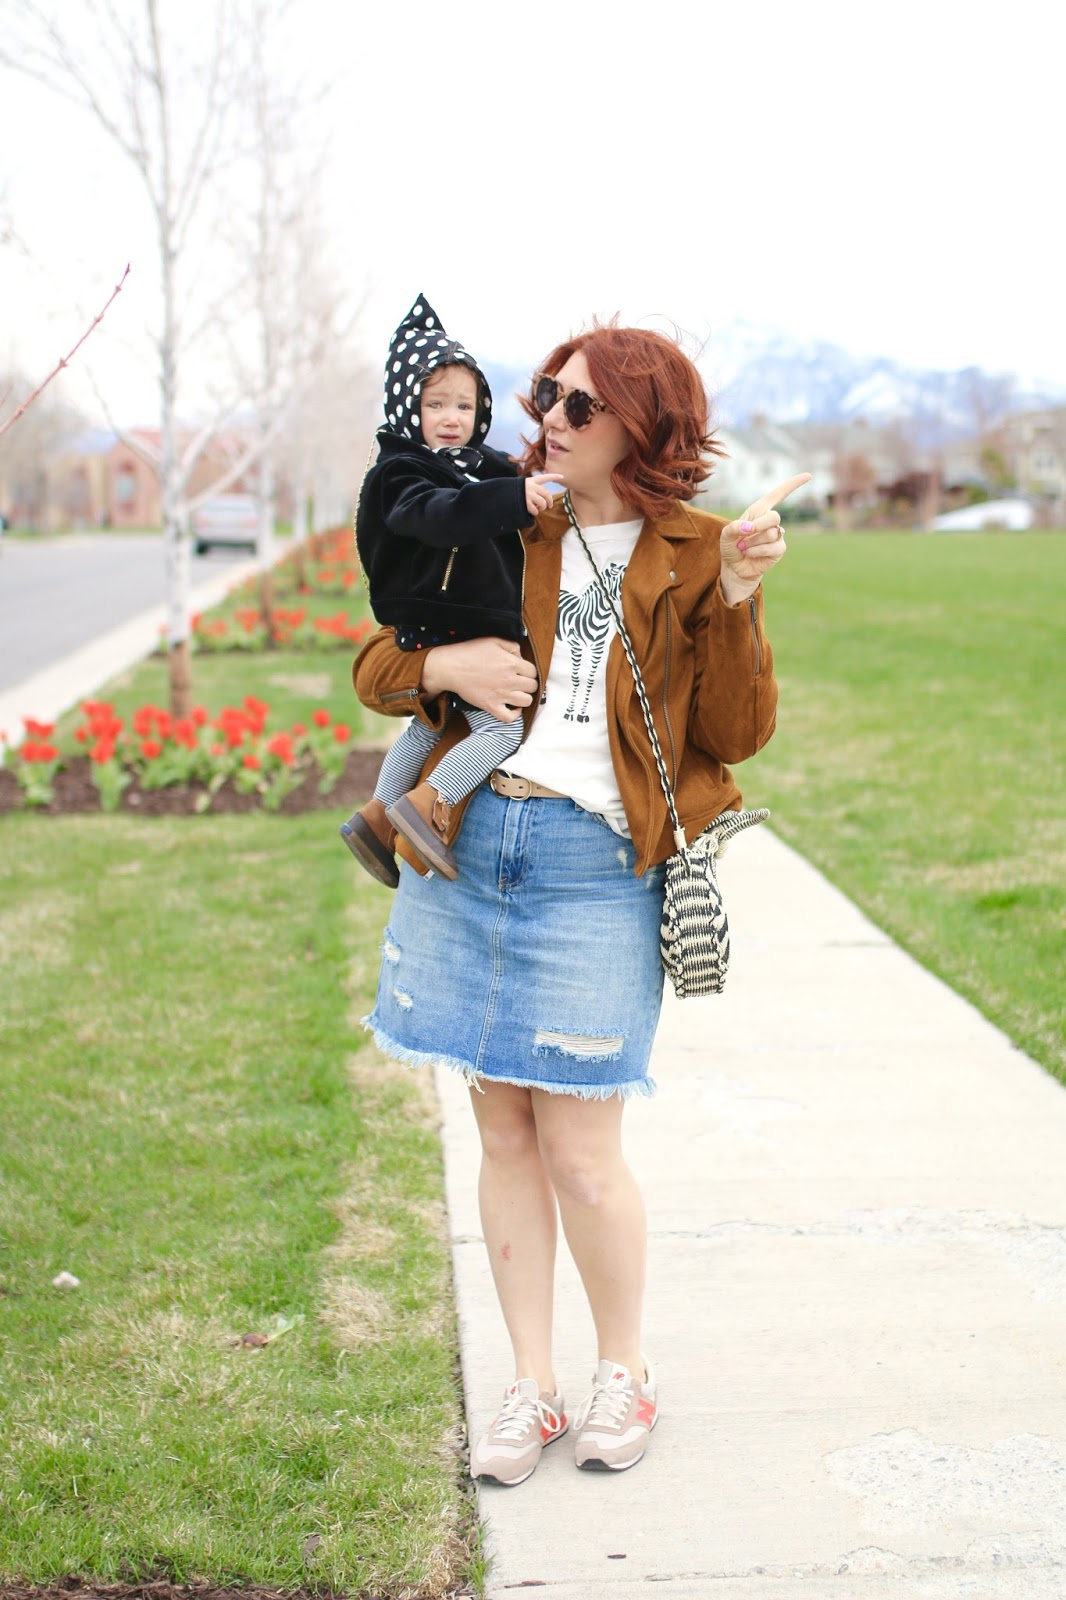 New Balance 574, Denim skirt, Mom style, circle straw bag, moto jacket, redhead bob